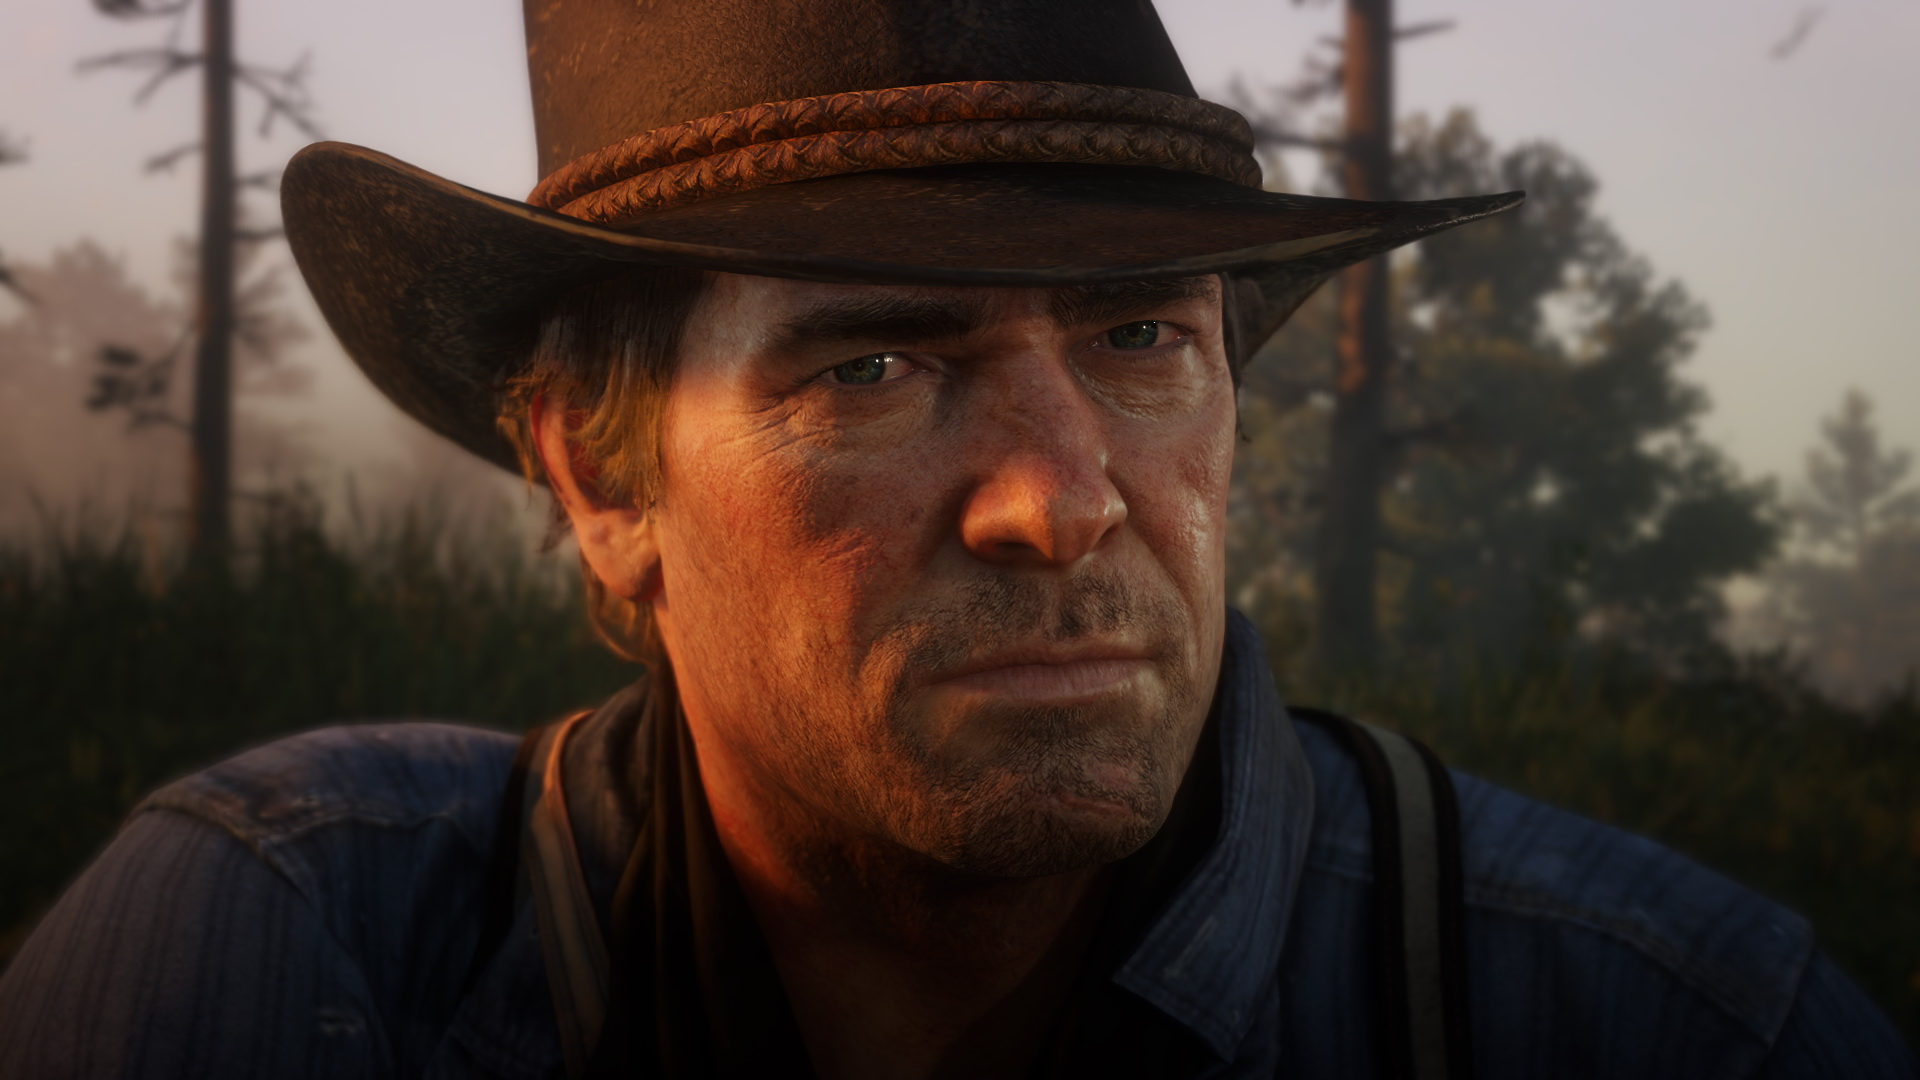 Red Dead Redemption II - what kind of man will you make Arthur?